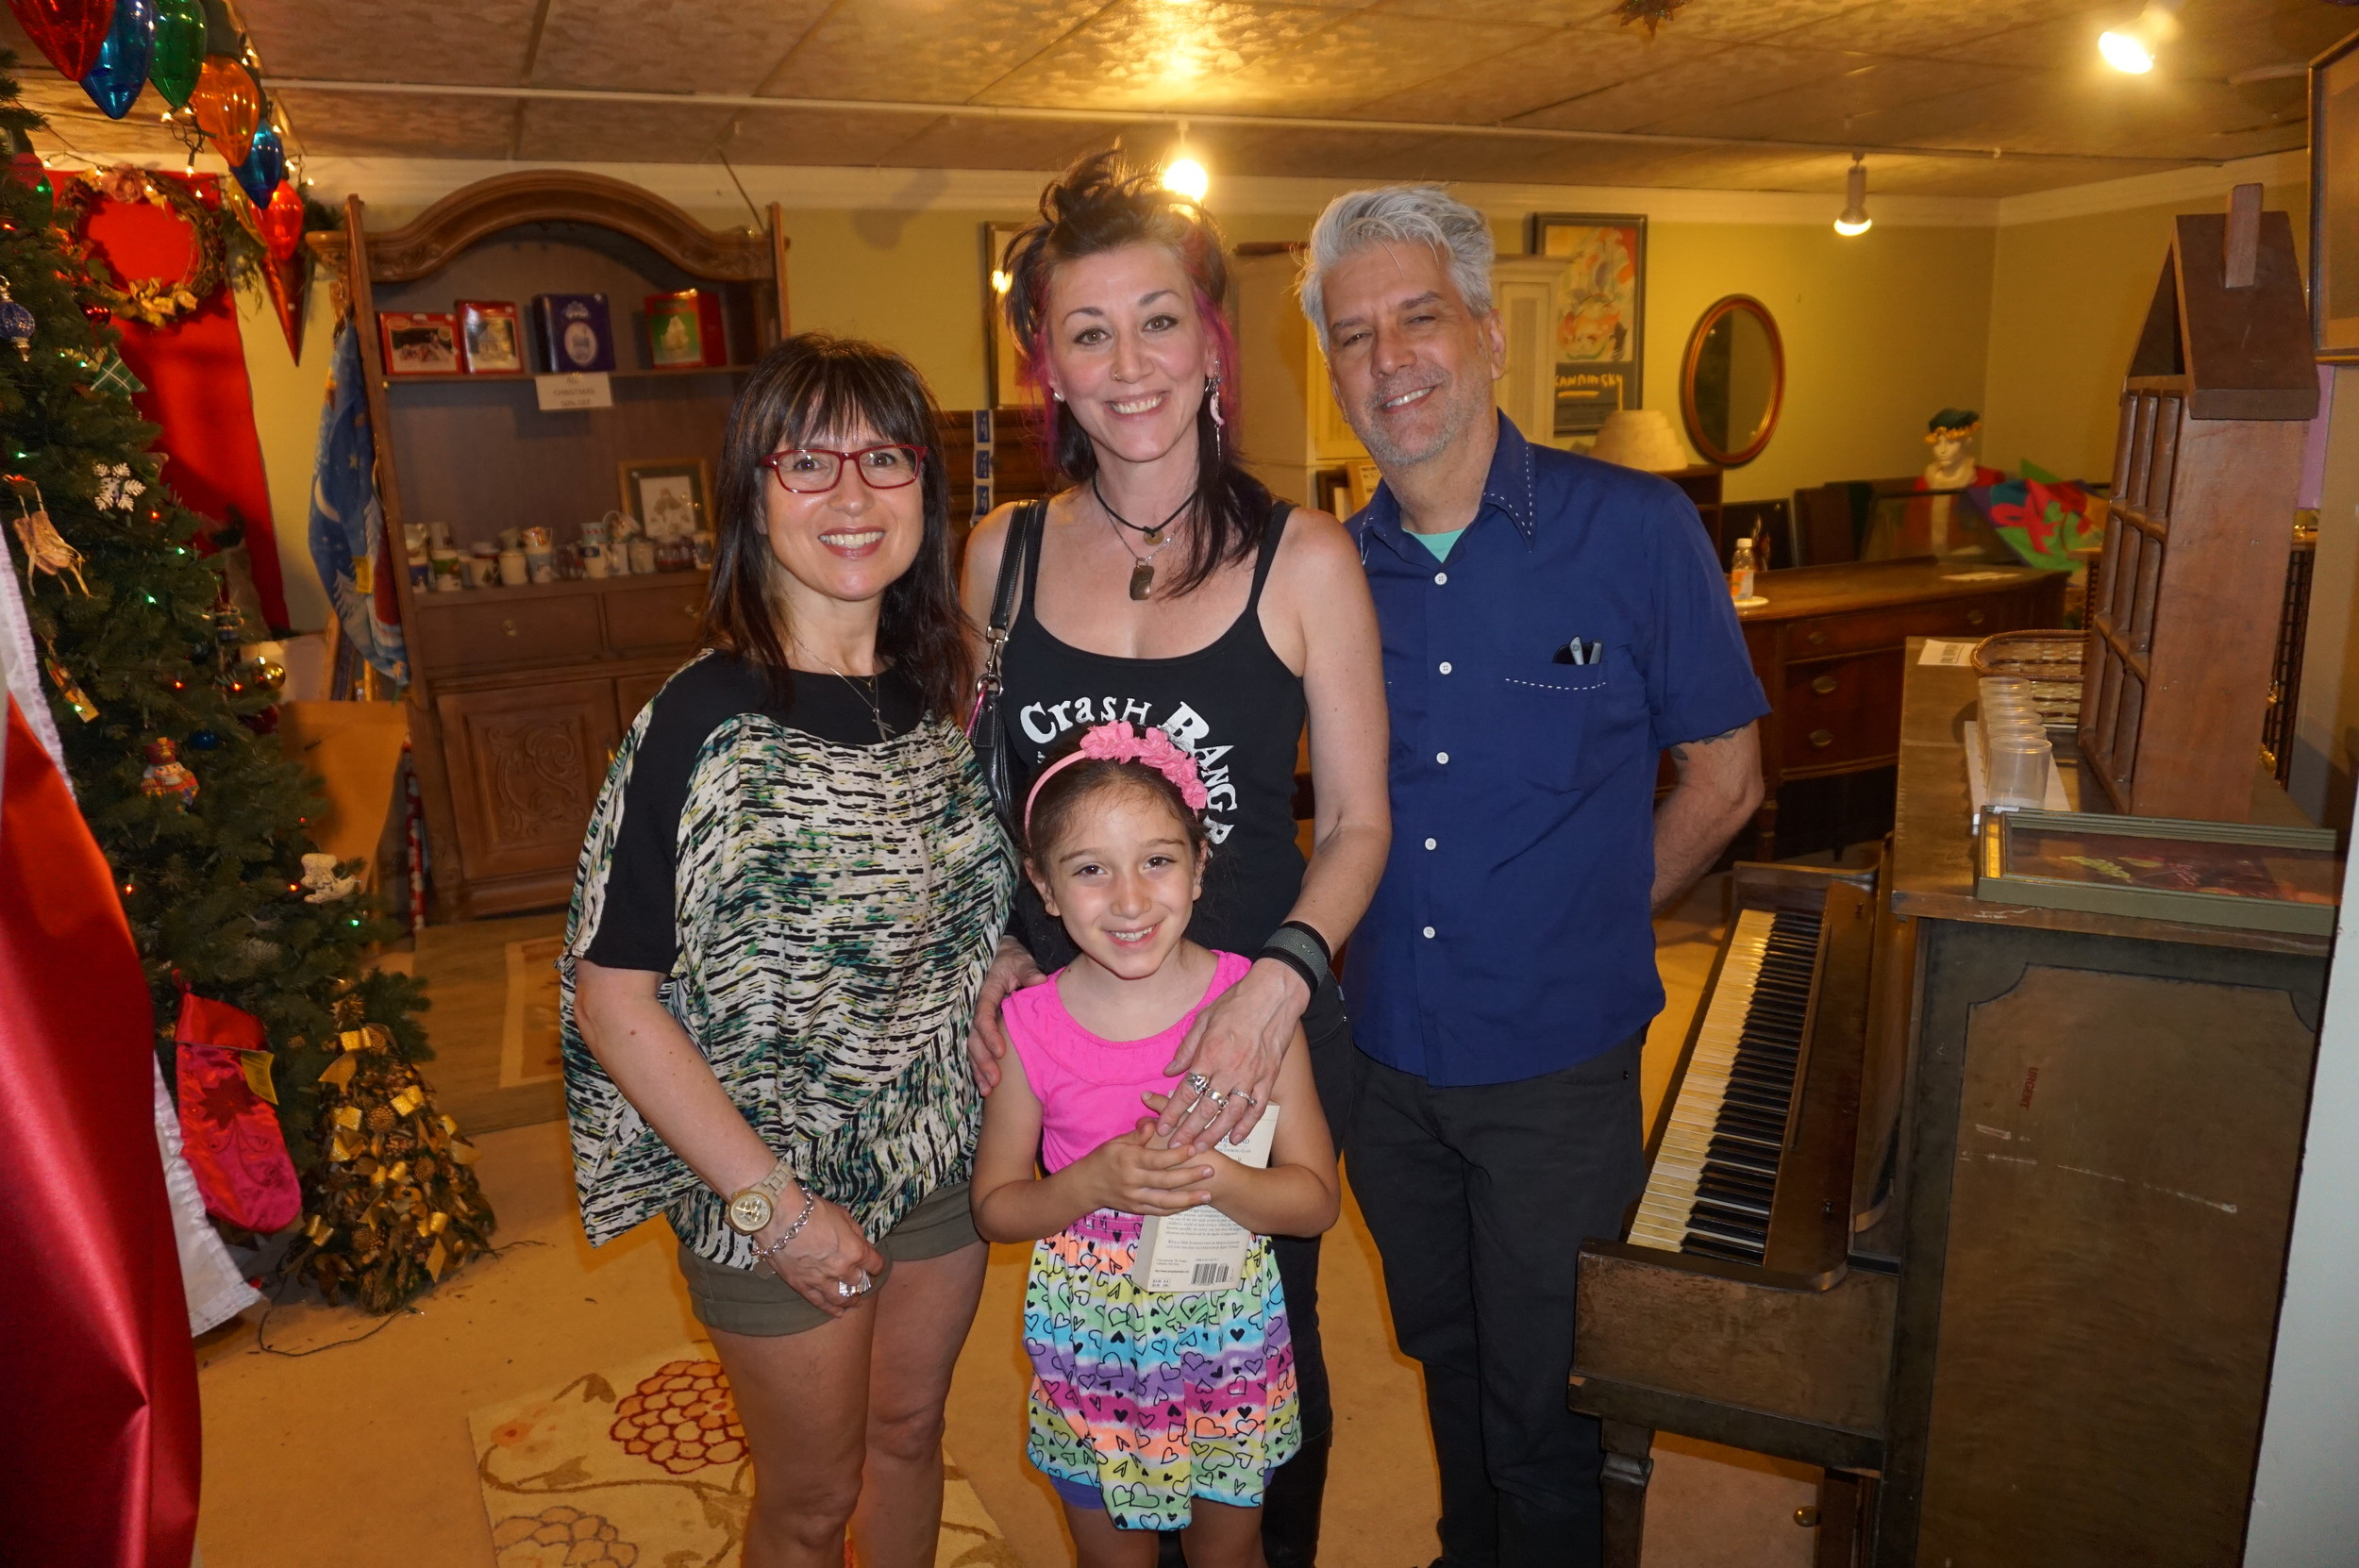 Bus Stop Boutique Owner and South Street Headhouse Board Member Elena Brennan, Crash Bang Boom co-owner Stefanie Jolles and her daughter, Robert Perry.JPG